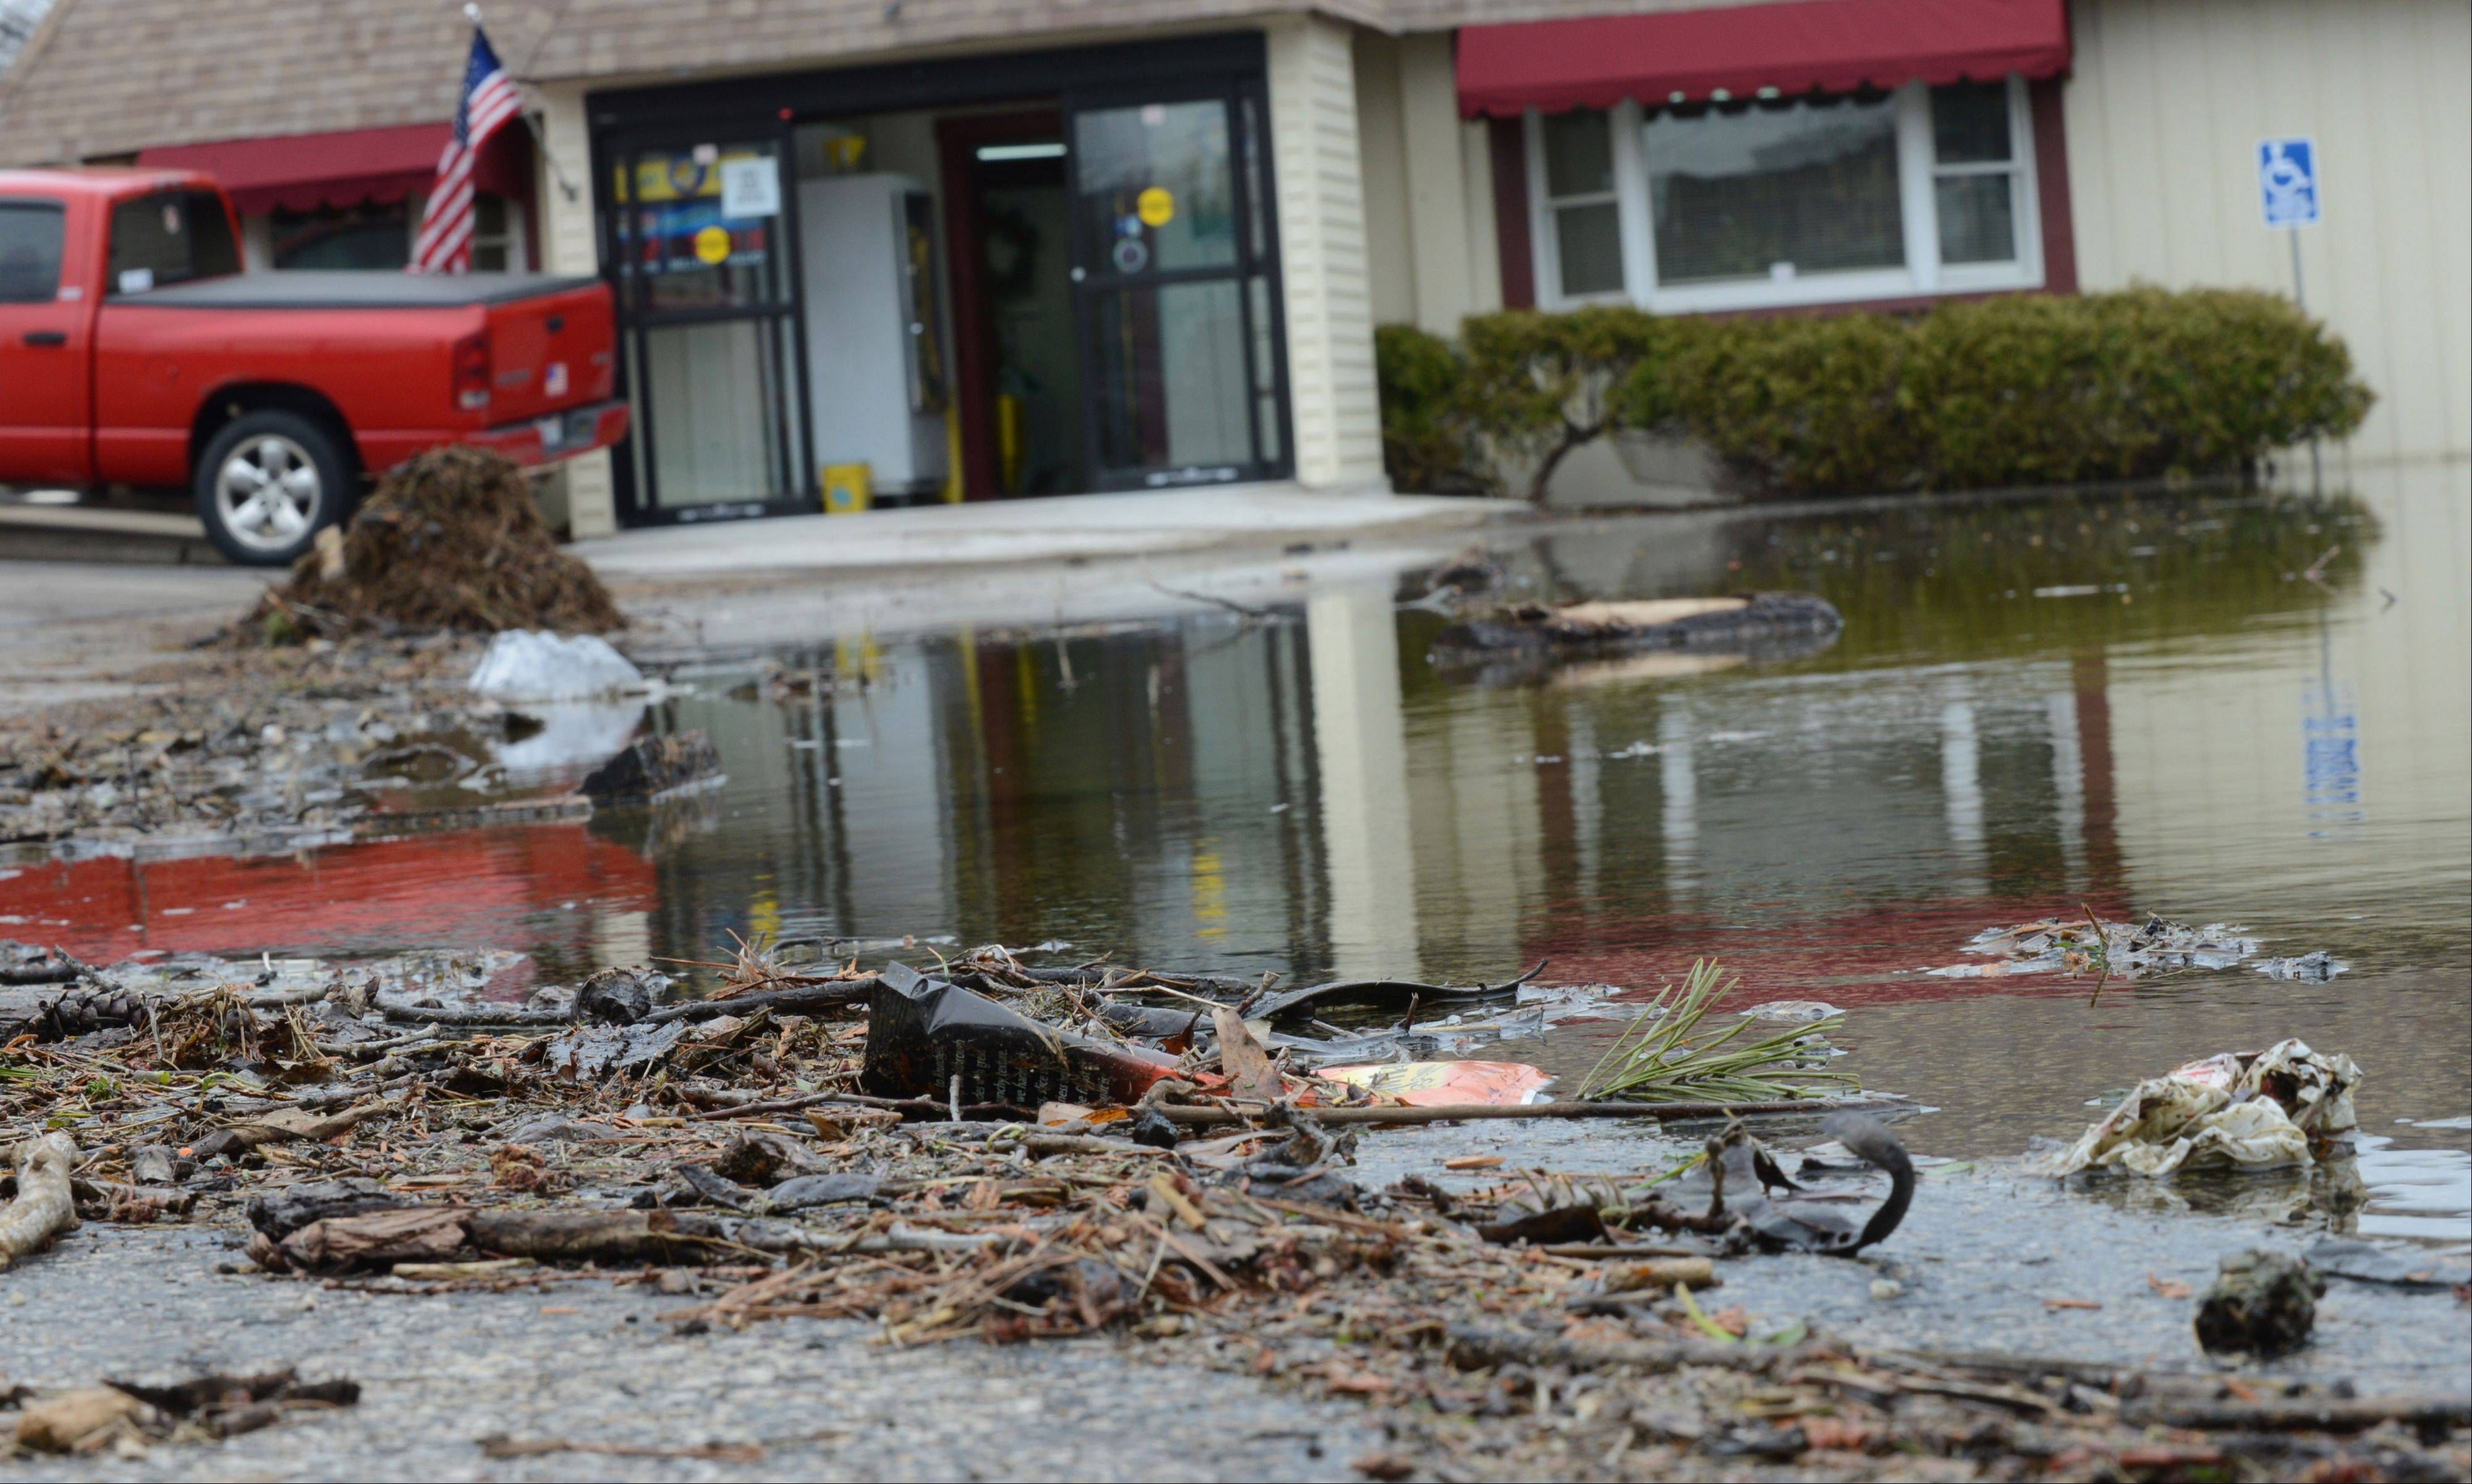 Debris was left behind as floodwaters started to recede at Channel Inn Fine Wine & Spirits on Grand Avenue in Fox Lake on Tuesday.